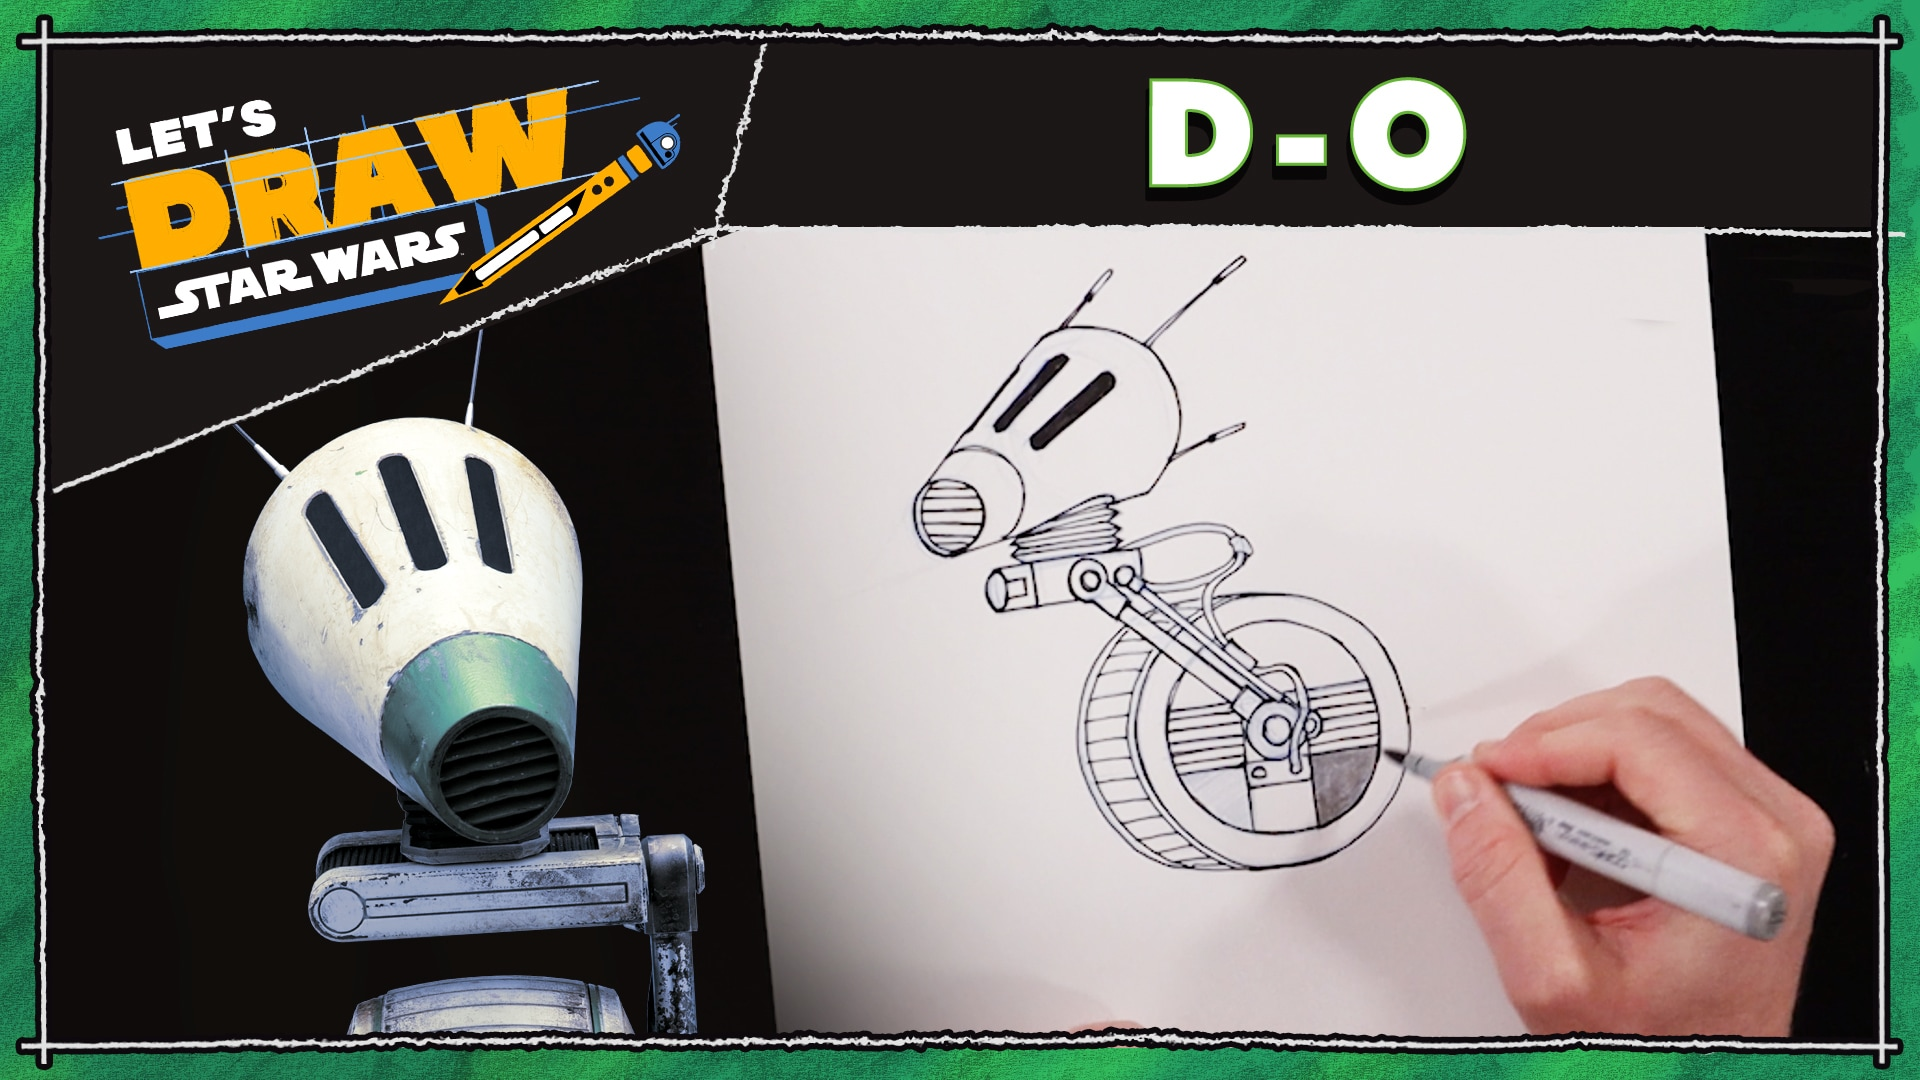 How to Draw D-O | Let's Draw Star Wars